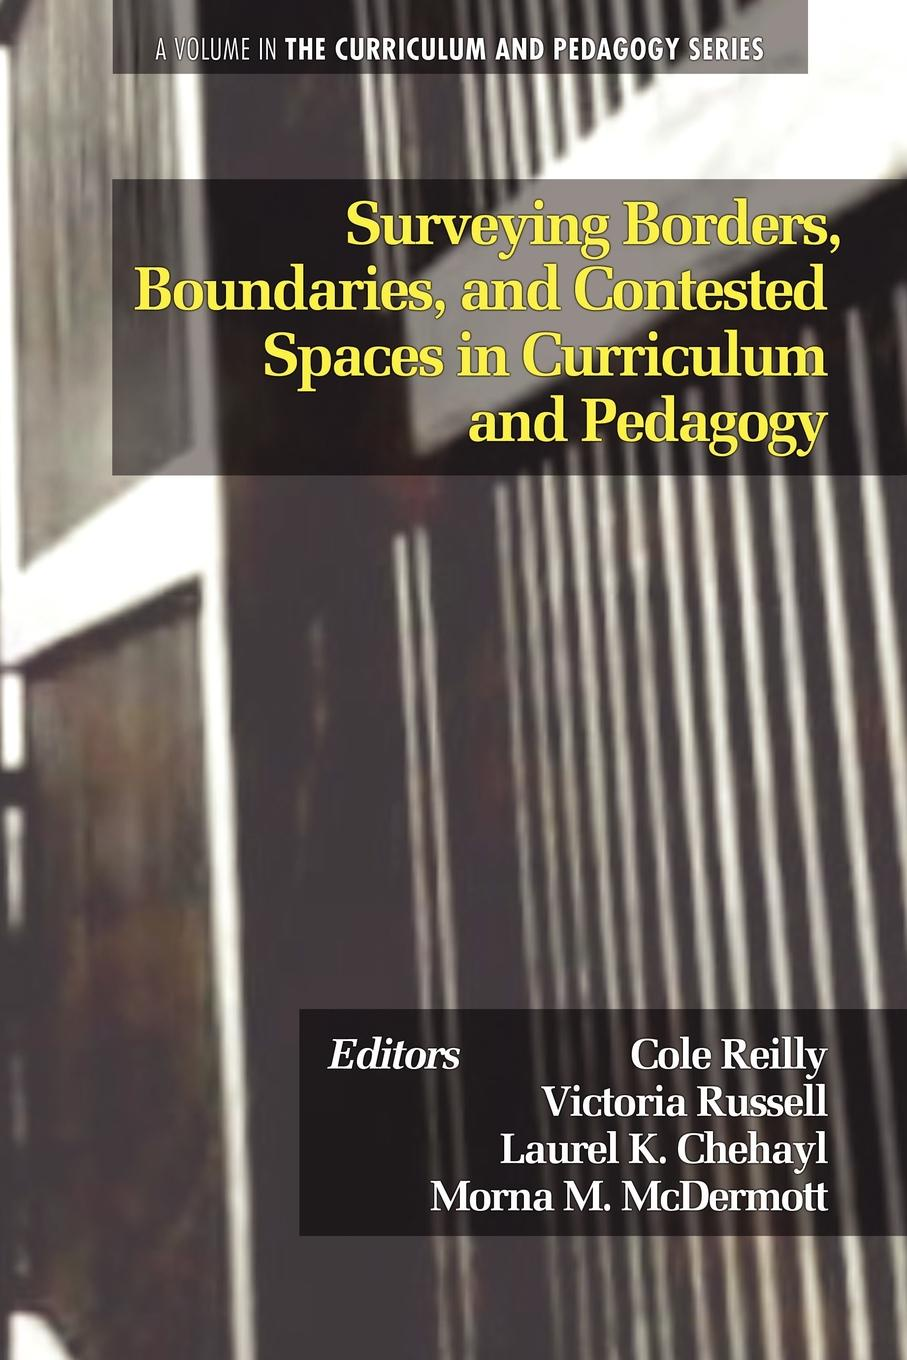 Surveying Borders, Boundaries, and Contested Spaces in Curriculum and Pedagogy zeus leonardo critical pedagogy and race